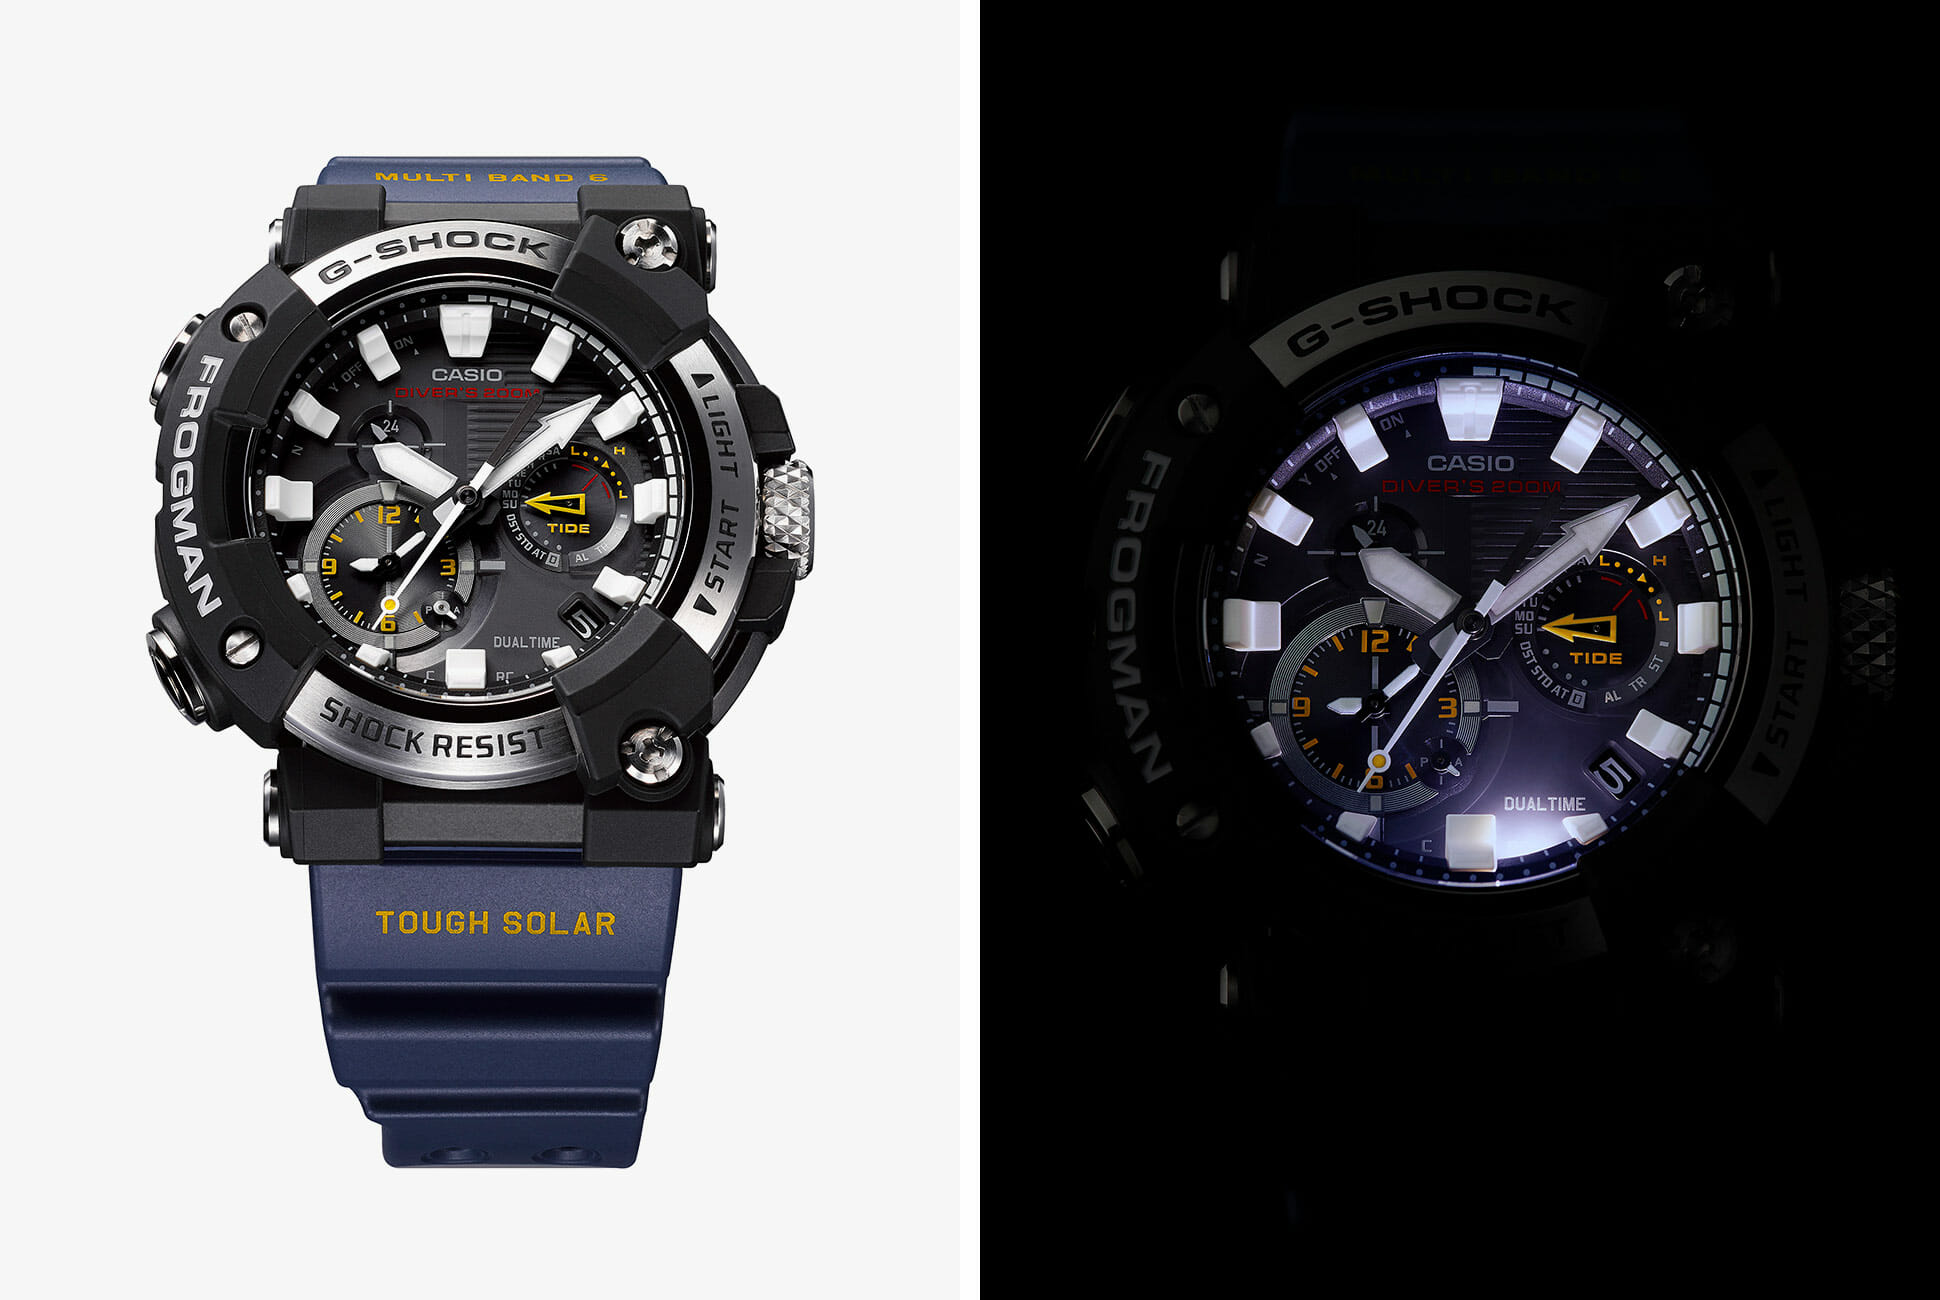 G-Shock's Professional Dive Watch Gets Updated Tech and an Analog Dial